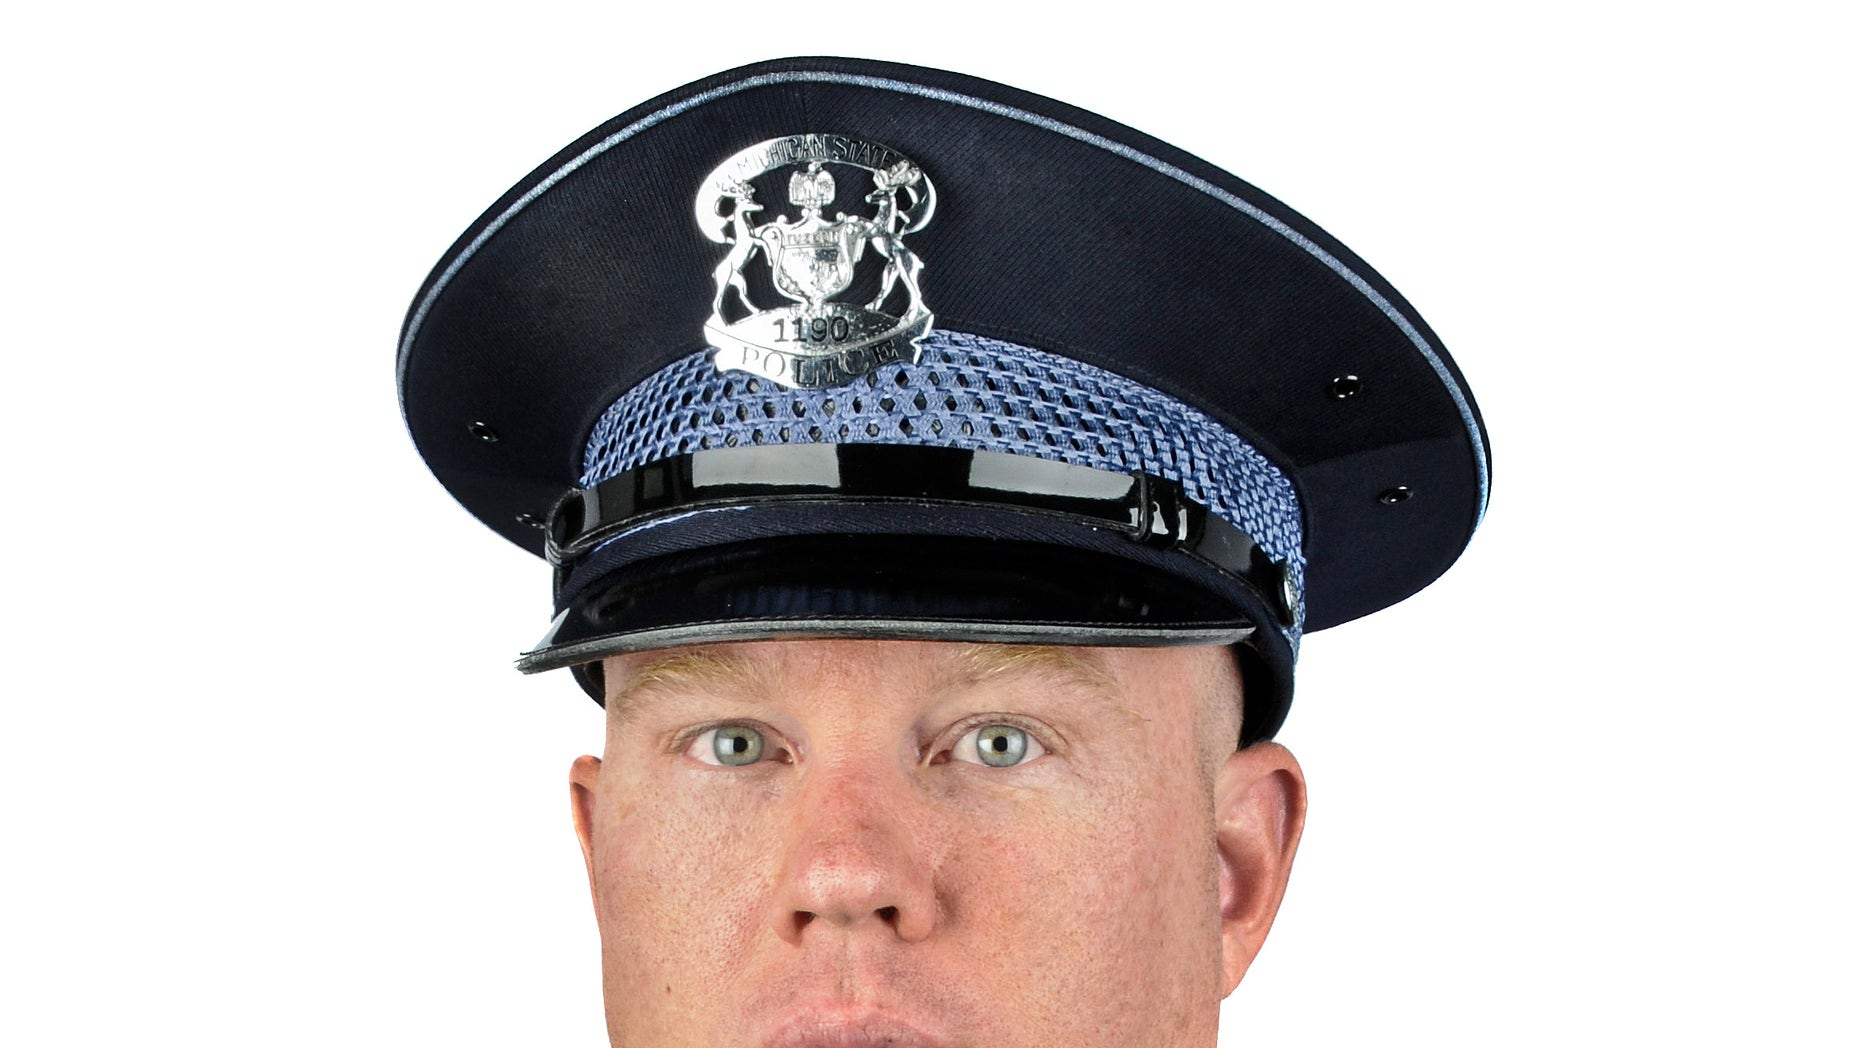 In this Aug. 8, 2011 photo released by the Michigan State Police, Trooper Paul Butterfield of the Hart post is shown. Butterfield was fatally shot in Mason County on Monday, Sept. 9, 2013.